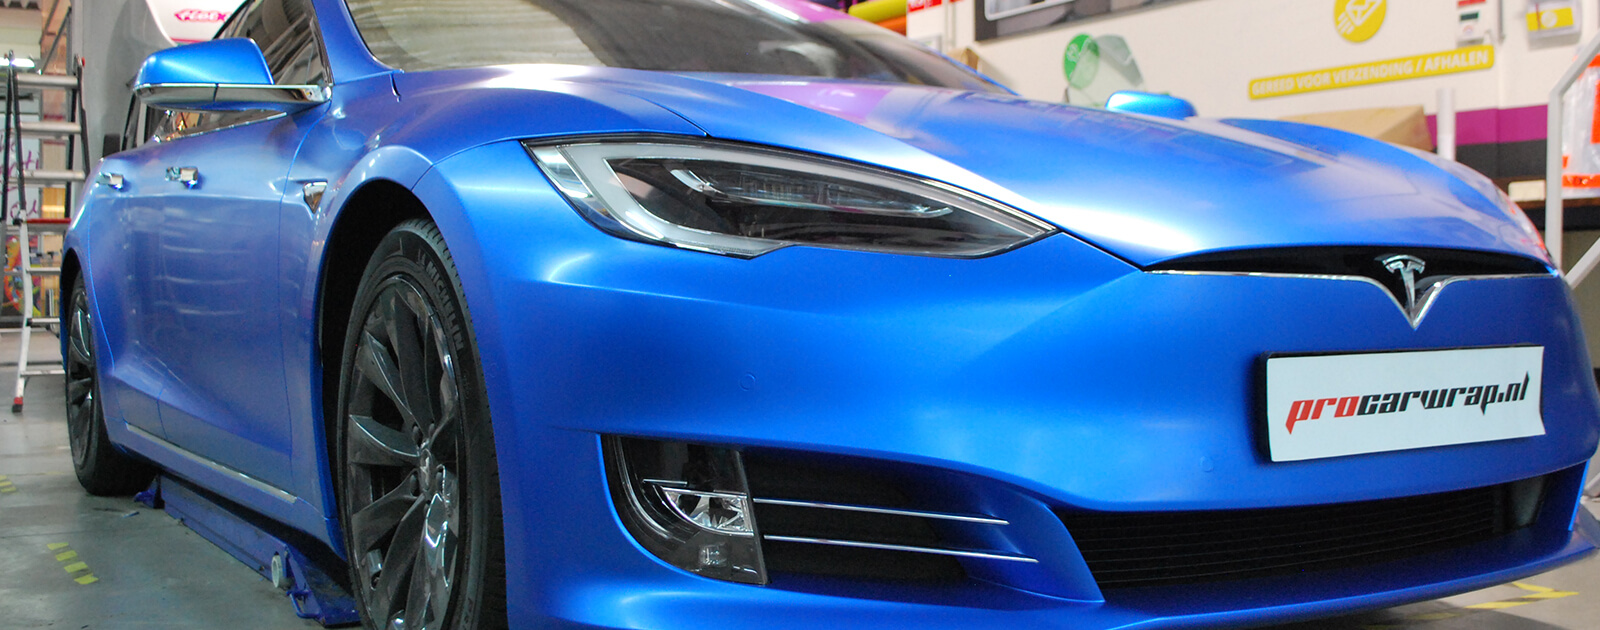 Tesla Model S satijn blauw wrap